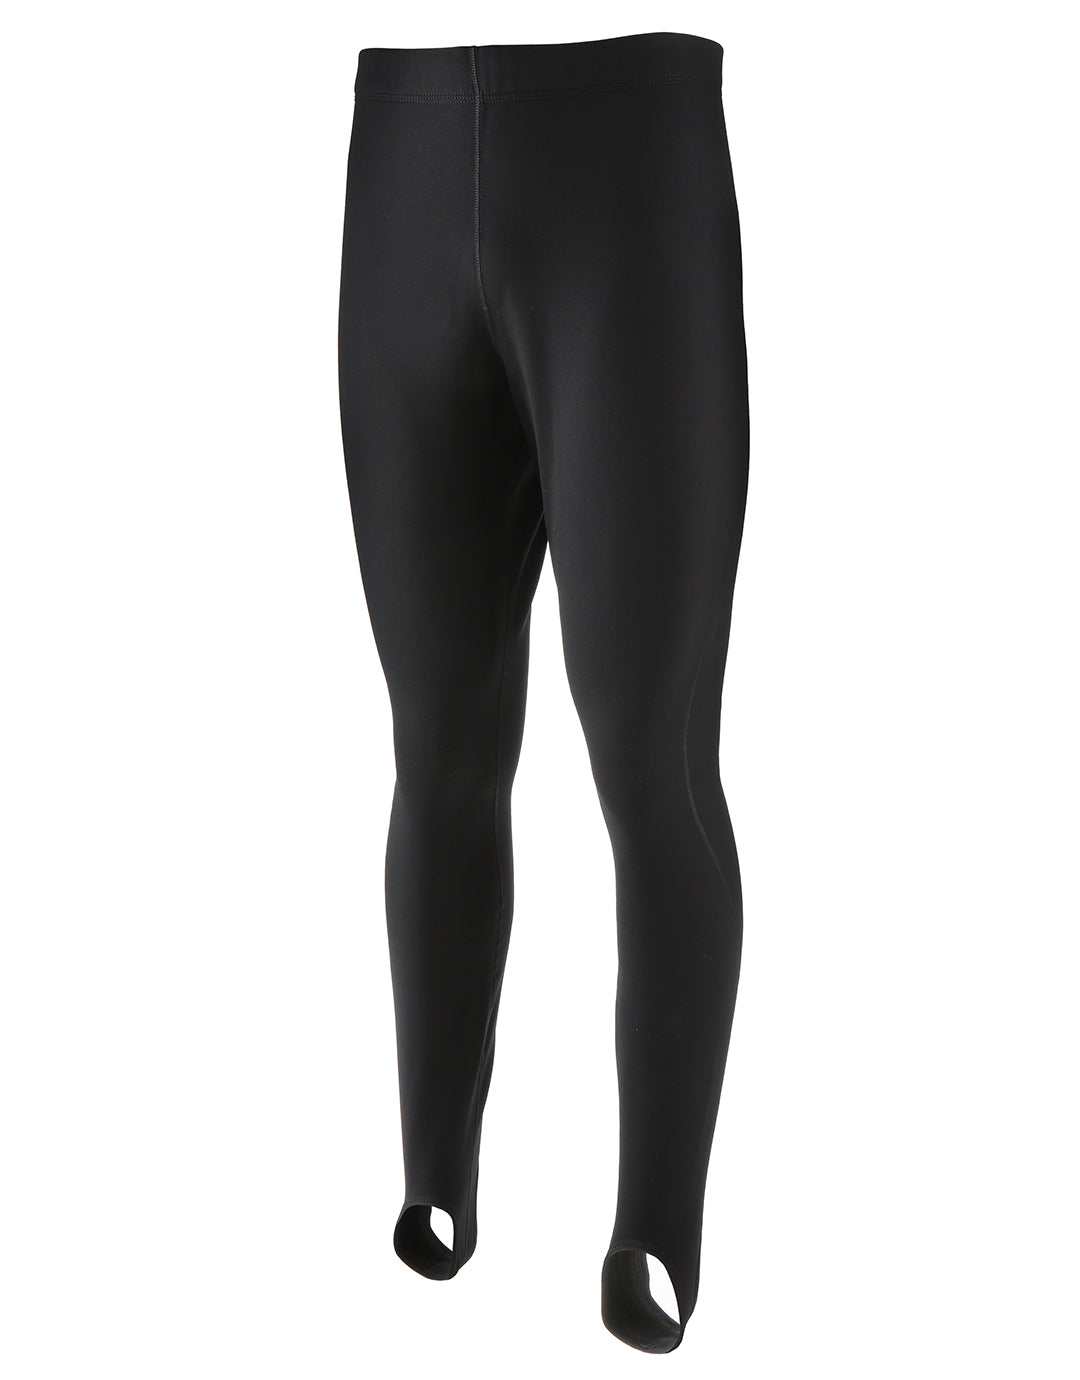 Image of Fourth Element Xerotherm Mens Leggings